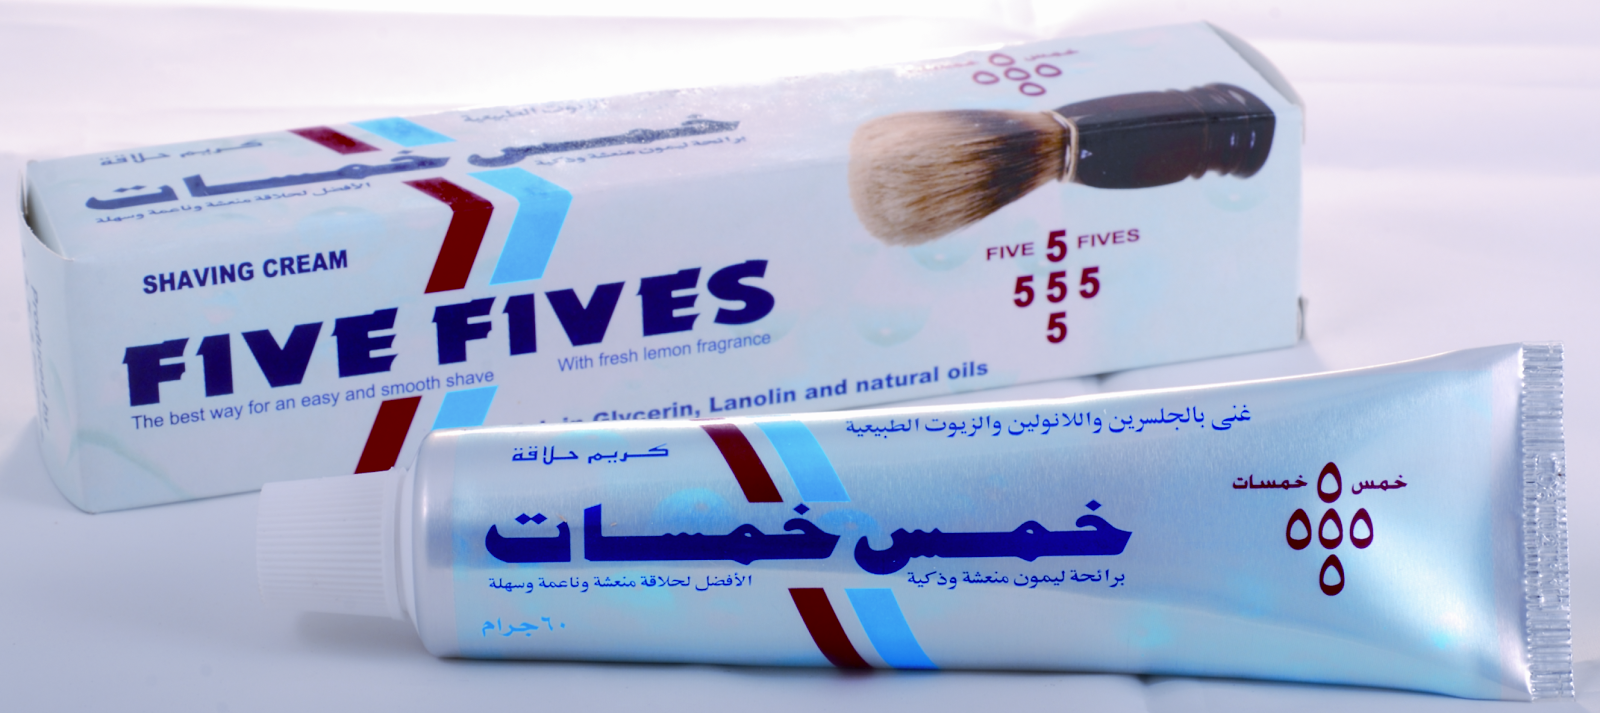 "Crème à raser ""Five fives"" Five+Fives+Shaving+Cream+Lemon"